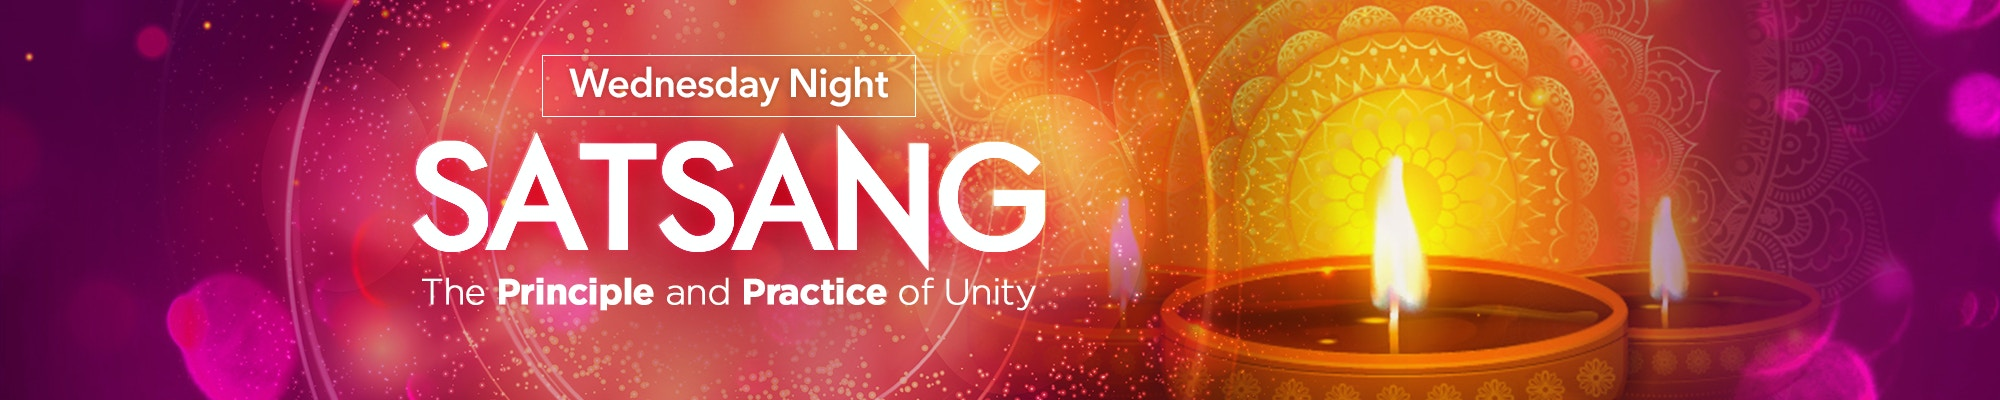 Wednesday Night Satsang